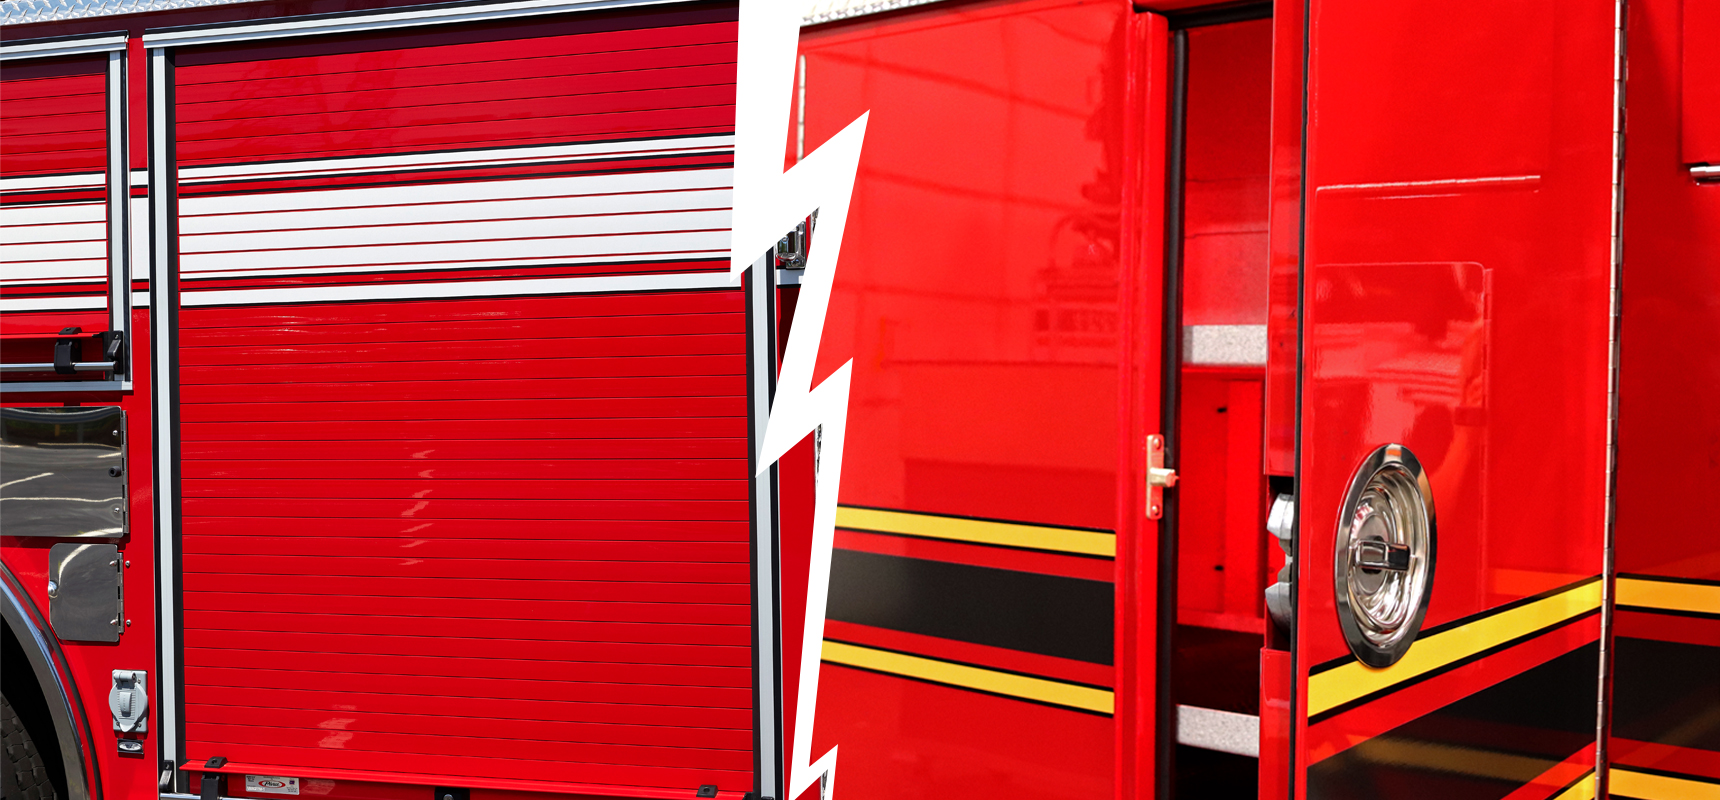 What is the difference between a hinged and roll-up fire truck door?